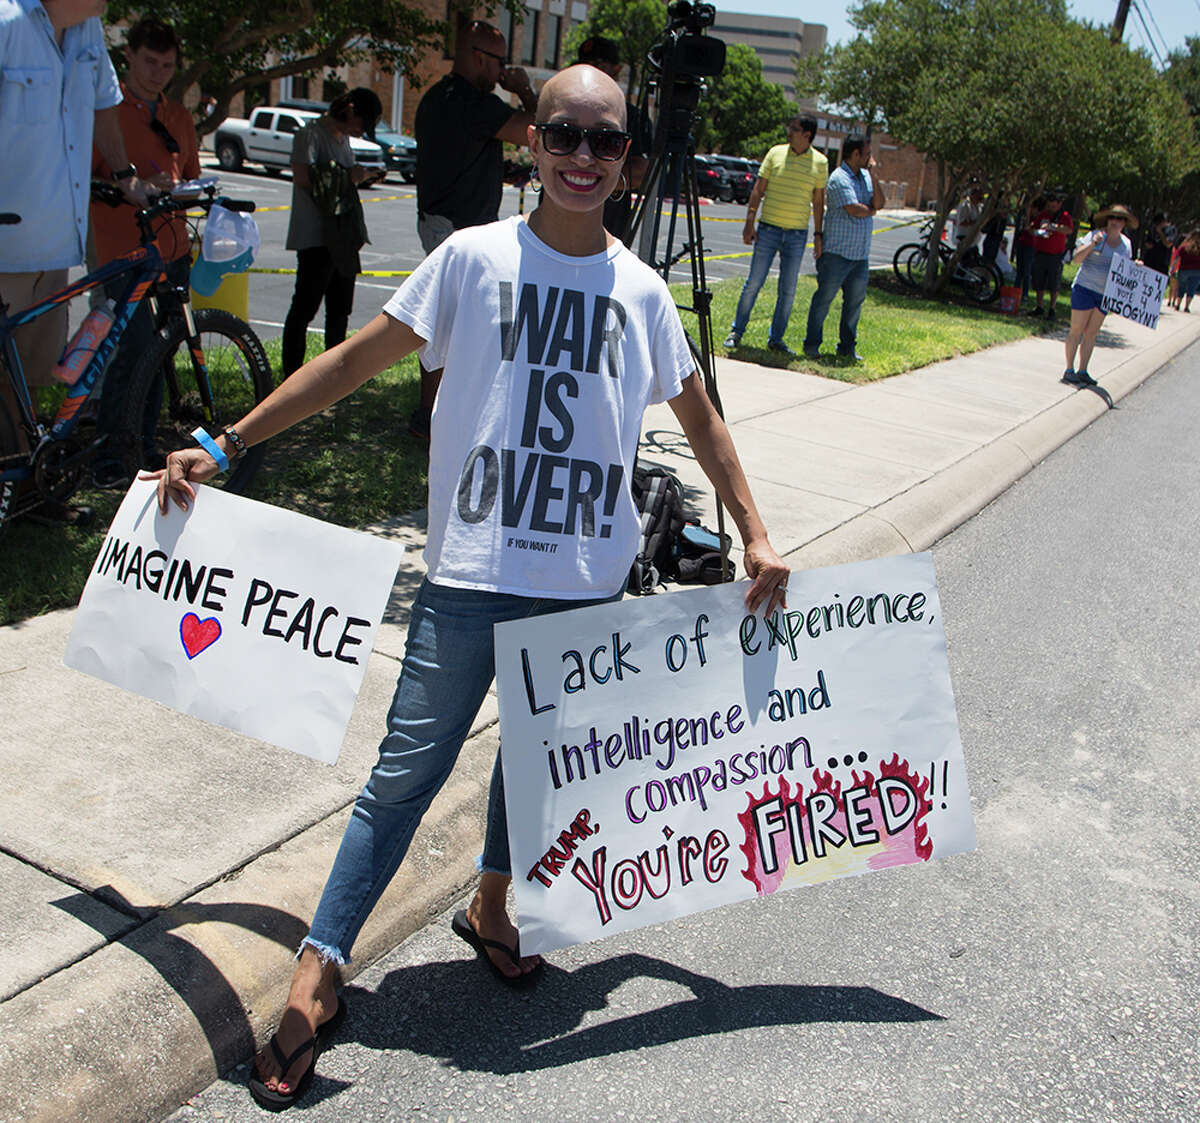 Hundreds of demonstrators assembled for Republican presidential candidate Donald Trump's visit to San Antonio, gathering near his private fundraiser at Oak Hills Country Club on June 17, 2016